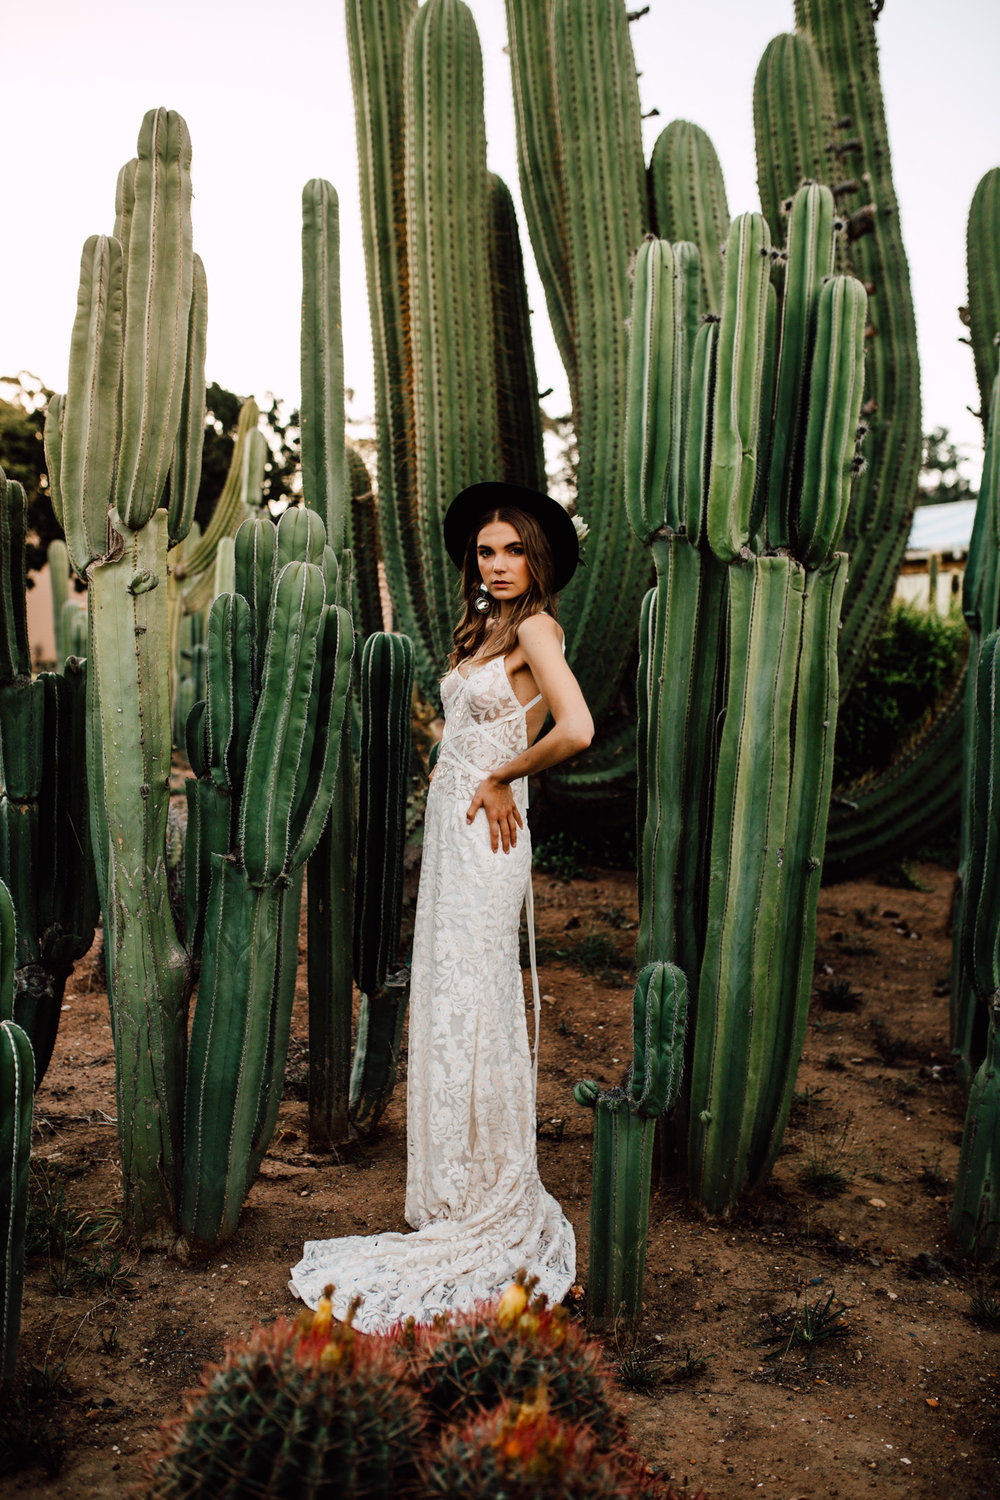 Cape-Town-Pia-Anna-Christian-Wedding-Photography-South-Africa-Bride-Cactus-17.jpg